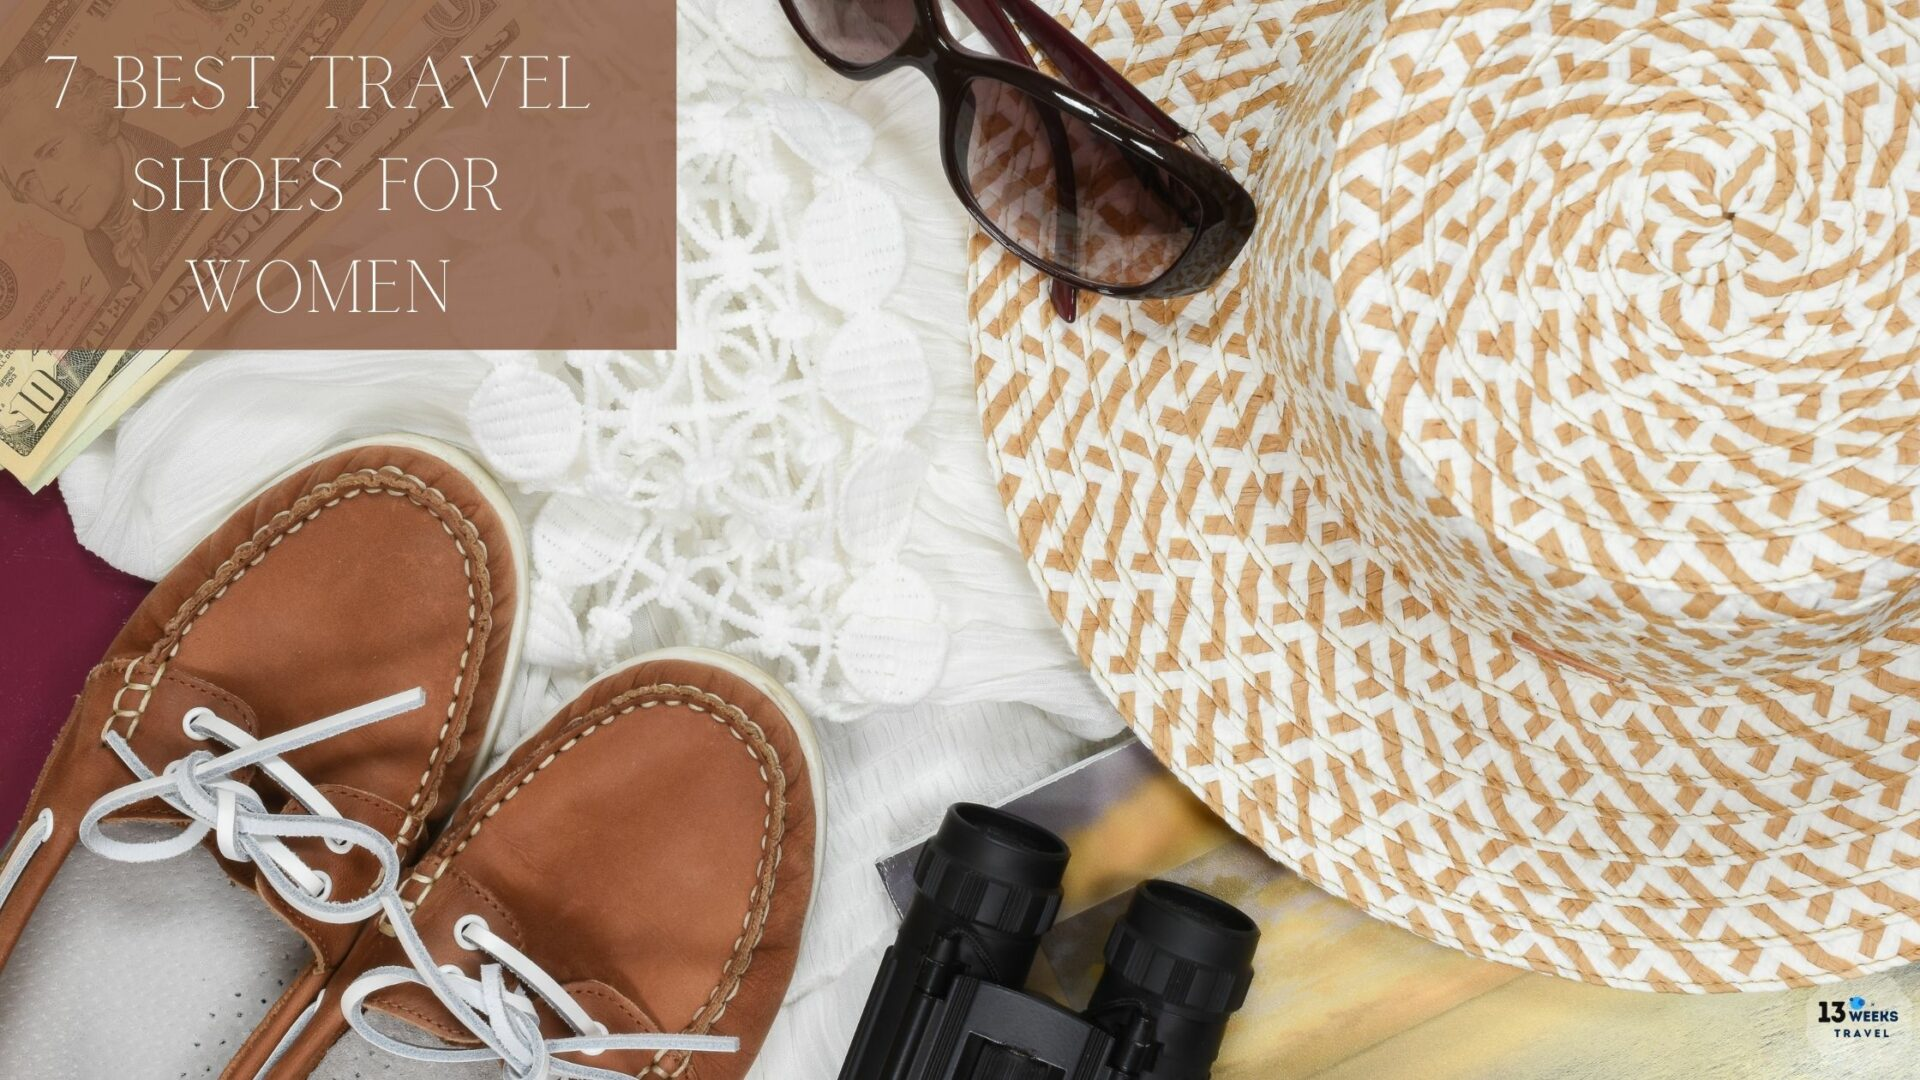 7 Best Travel Shoes For Women | 13 Weeks Travel